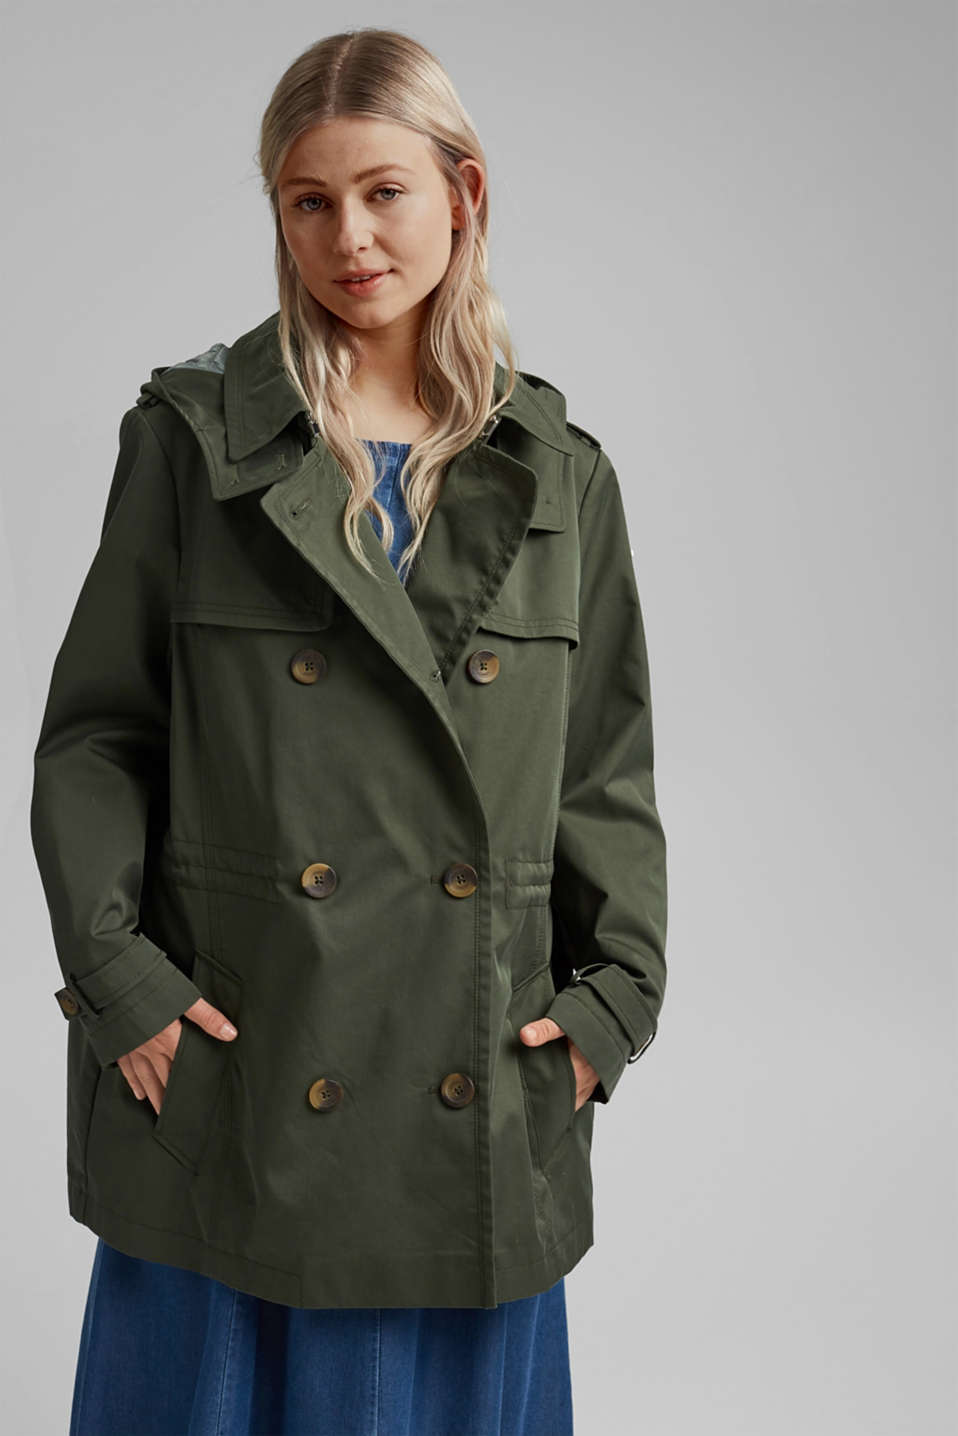 Esprit - Hooded trench coat made of organic cotton